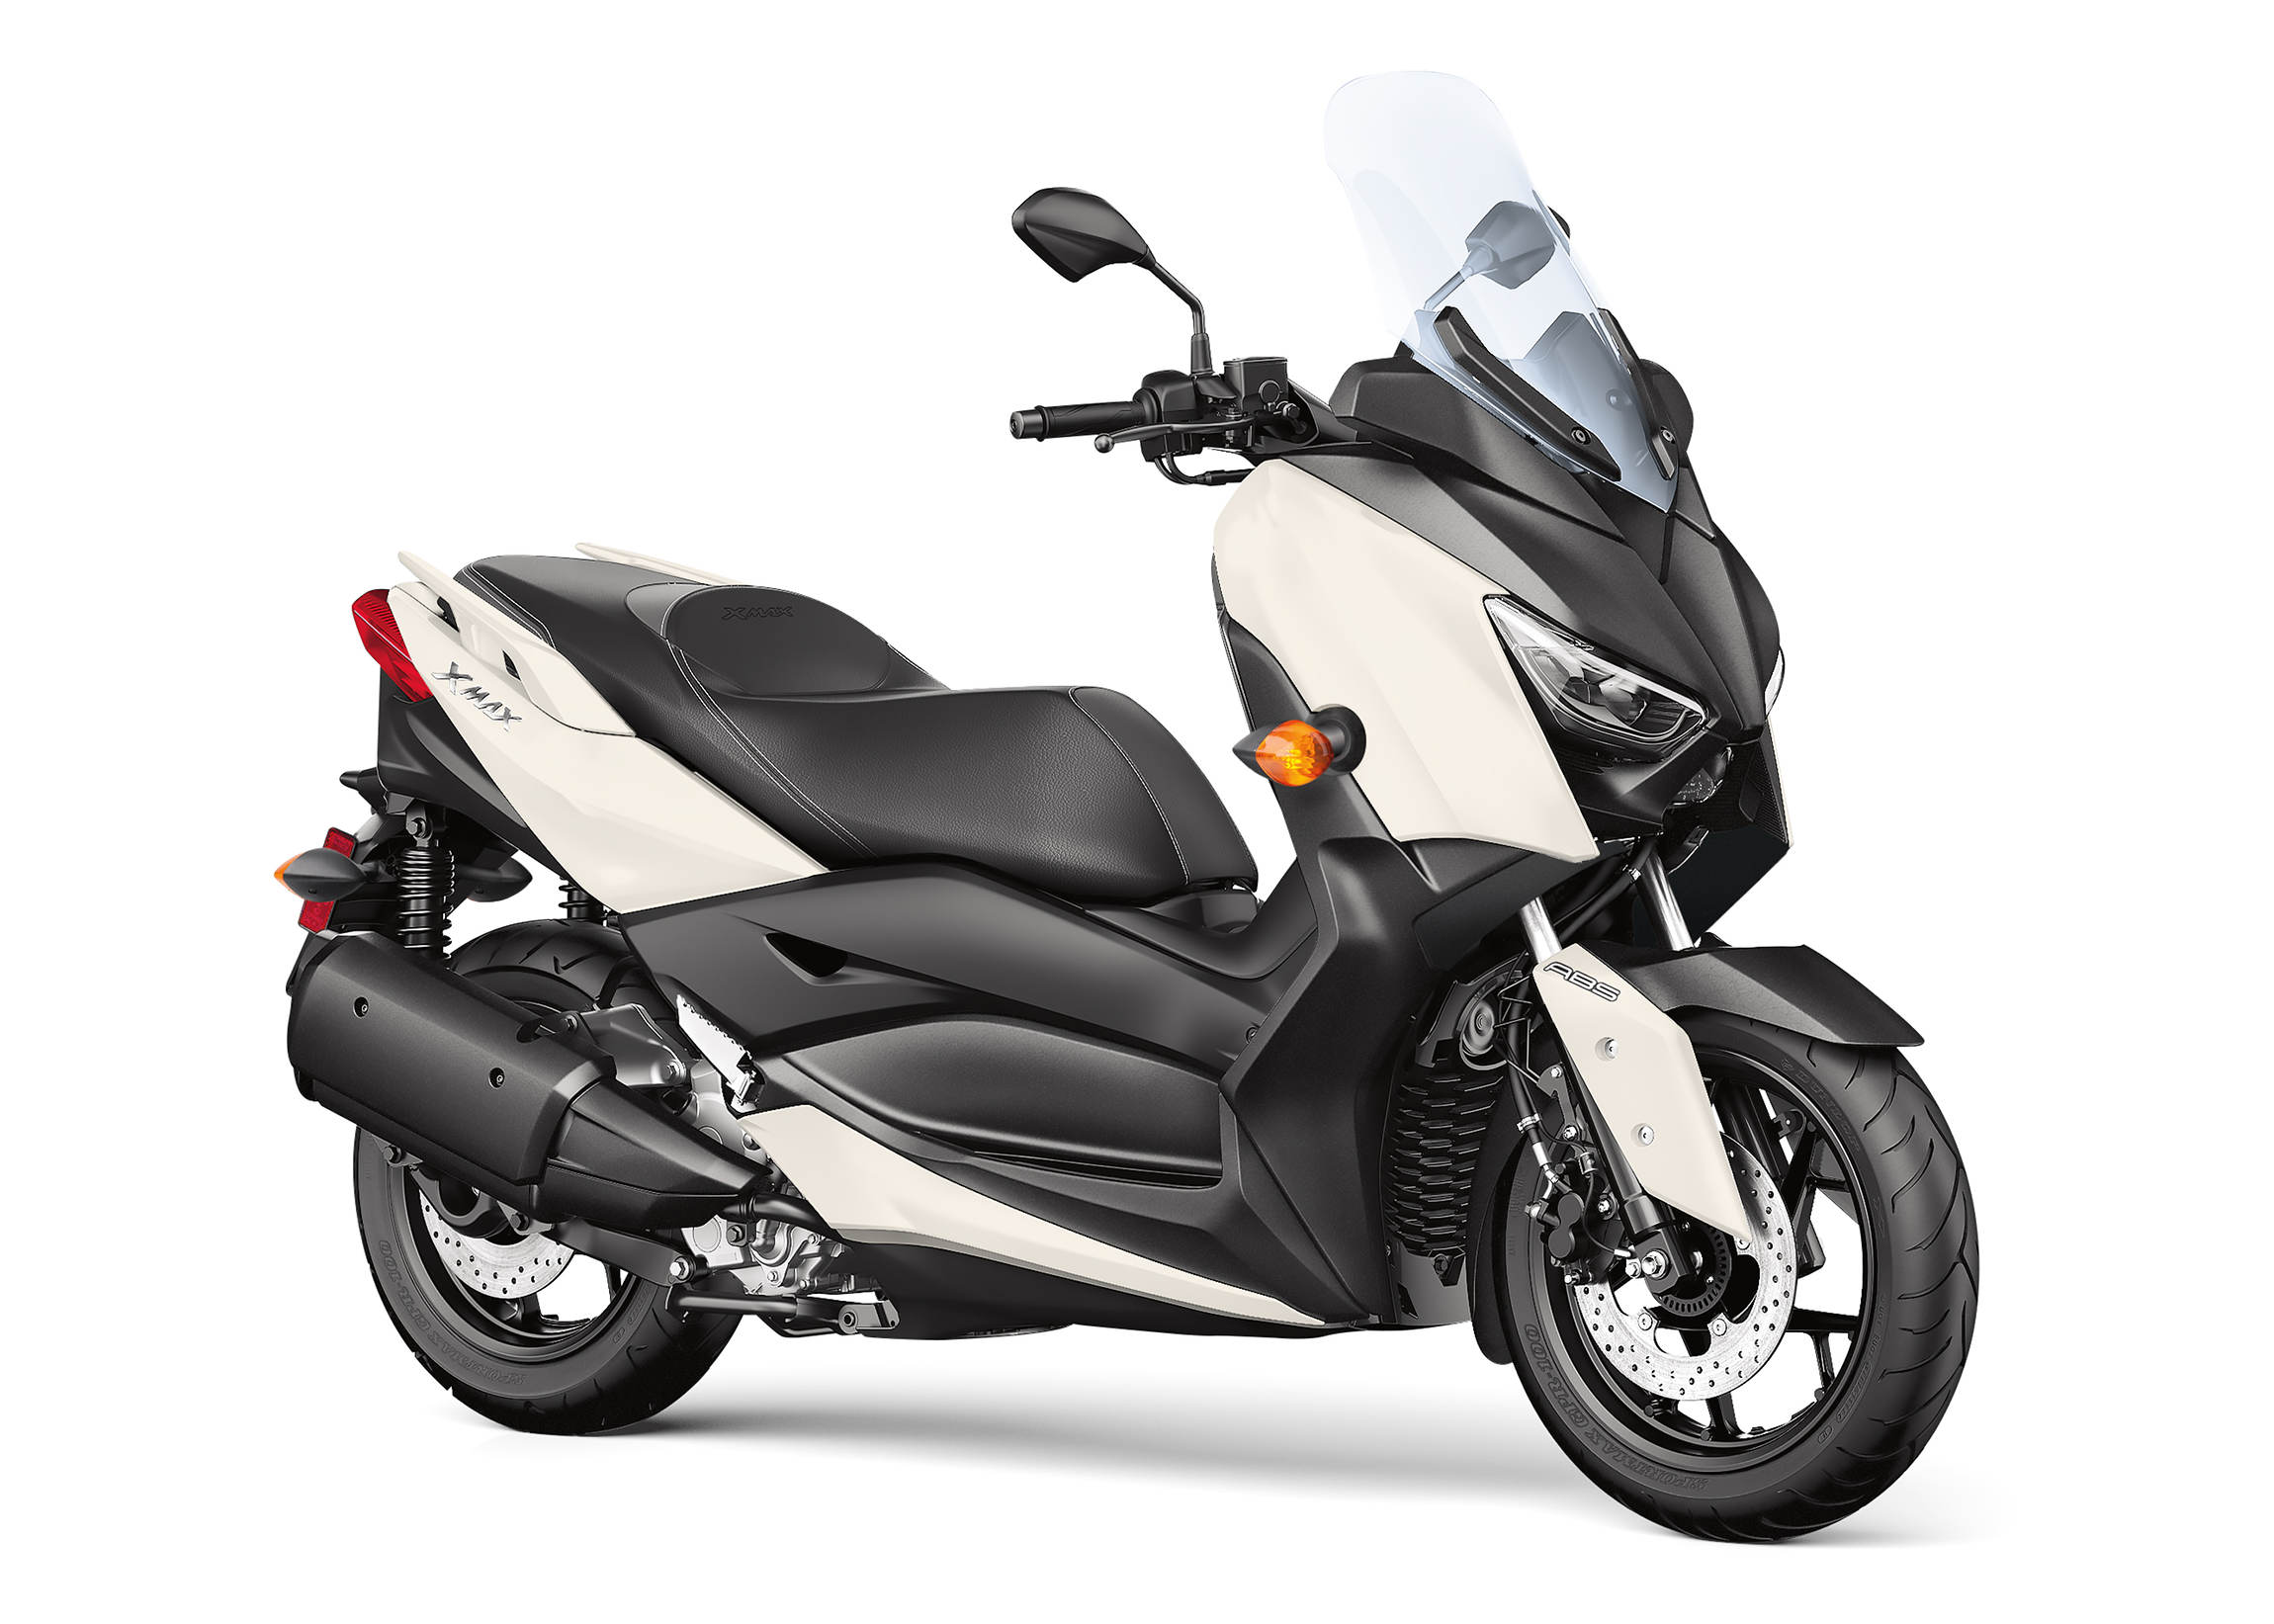 Yamaha introduces new 2018 xmax scooter motorcycledaily for Yamaha new motorcycles 2018